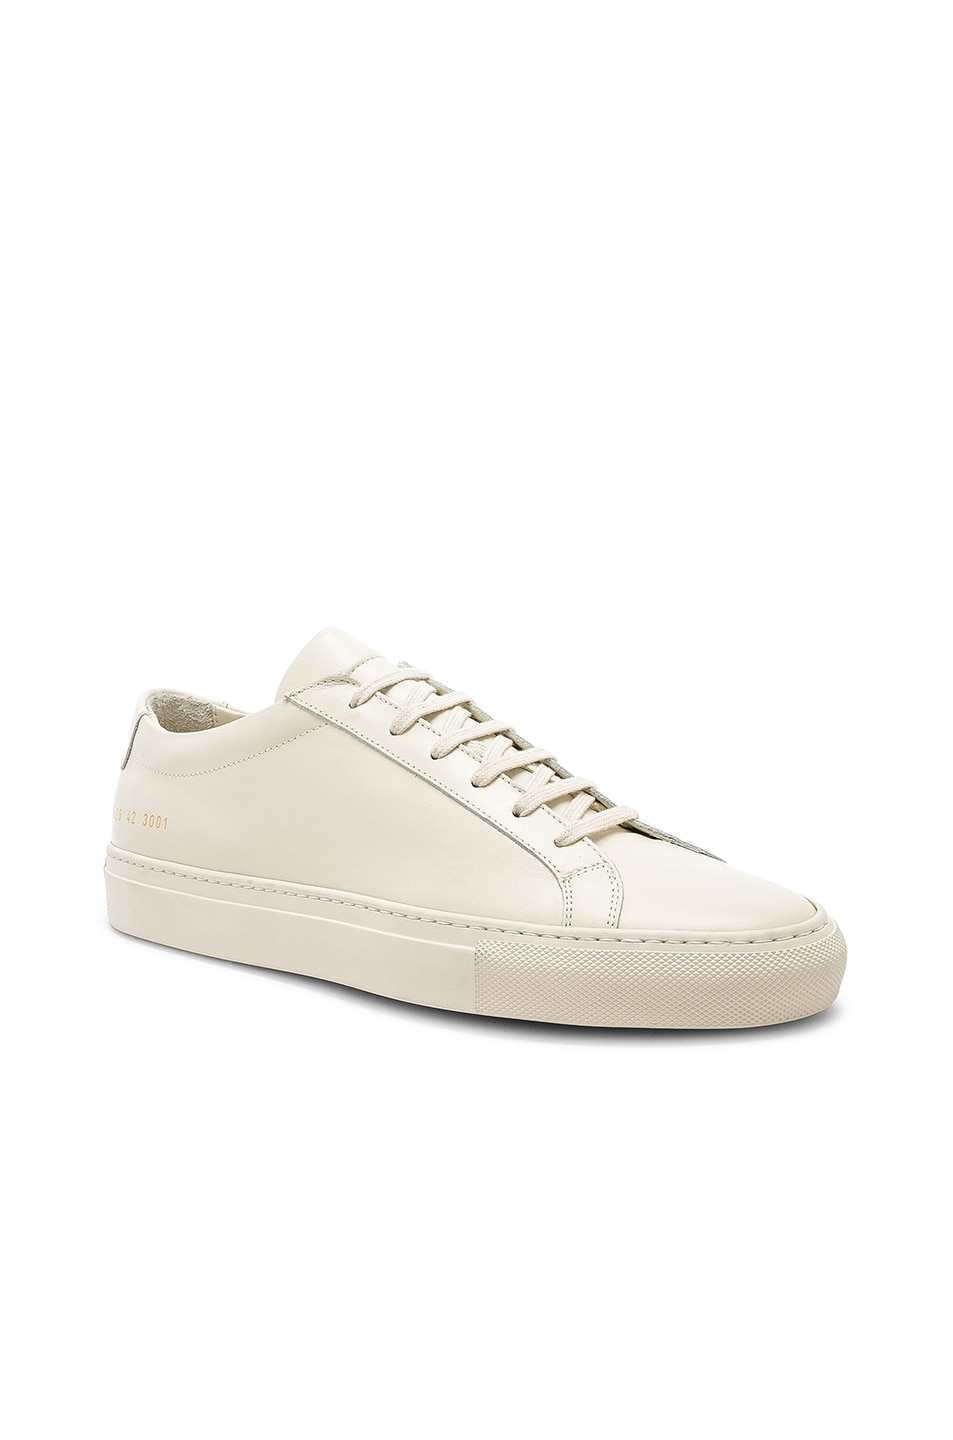 Image 1 of Common Projects Original Leather Achilles Low in Warm White